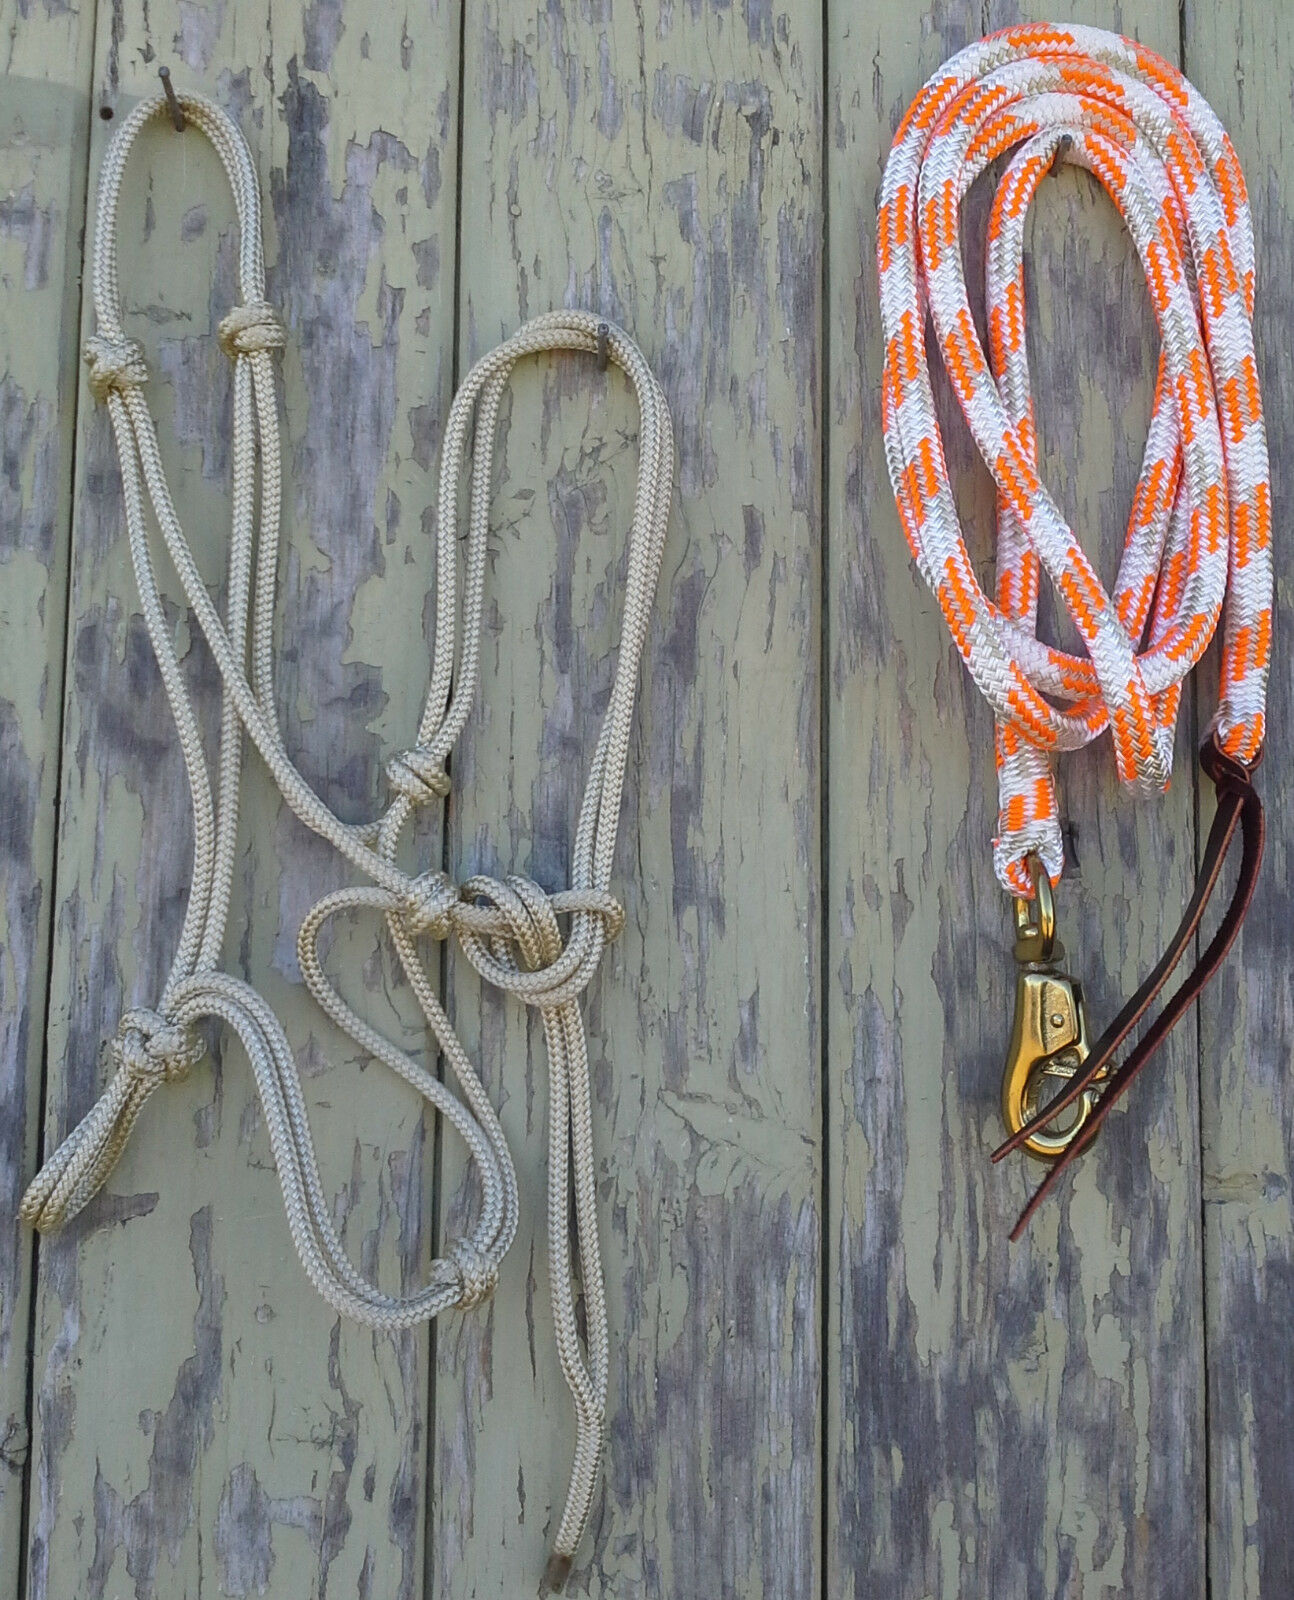 4 Knot Rope Halter & 14ft Lead Rope 12mm Rope w Brass Trigger Bull Snap orange